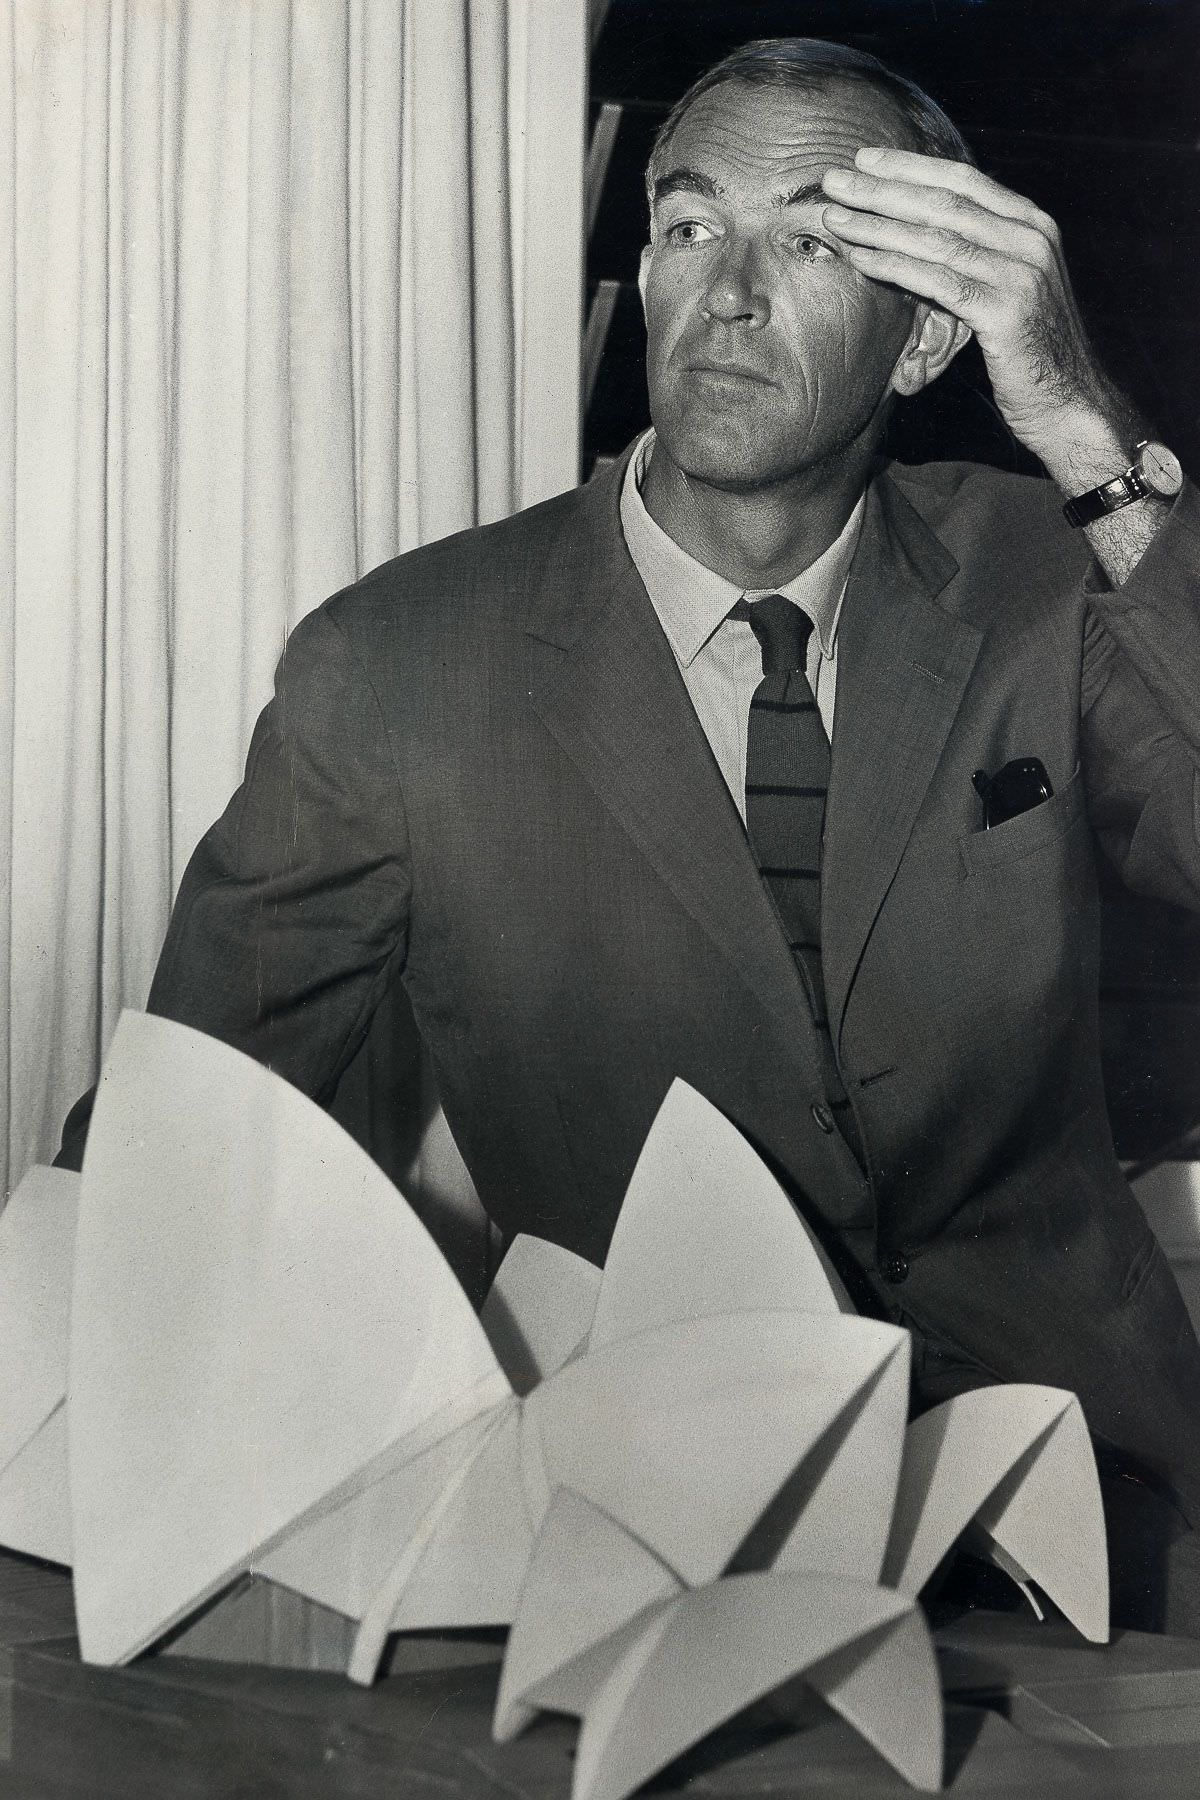 Architect Jørn Utzon after a press conference with a scale model of the Sydney Opera House, March 8, 1966.